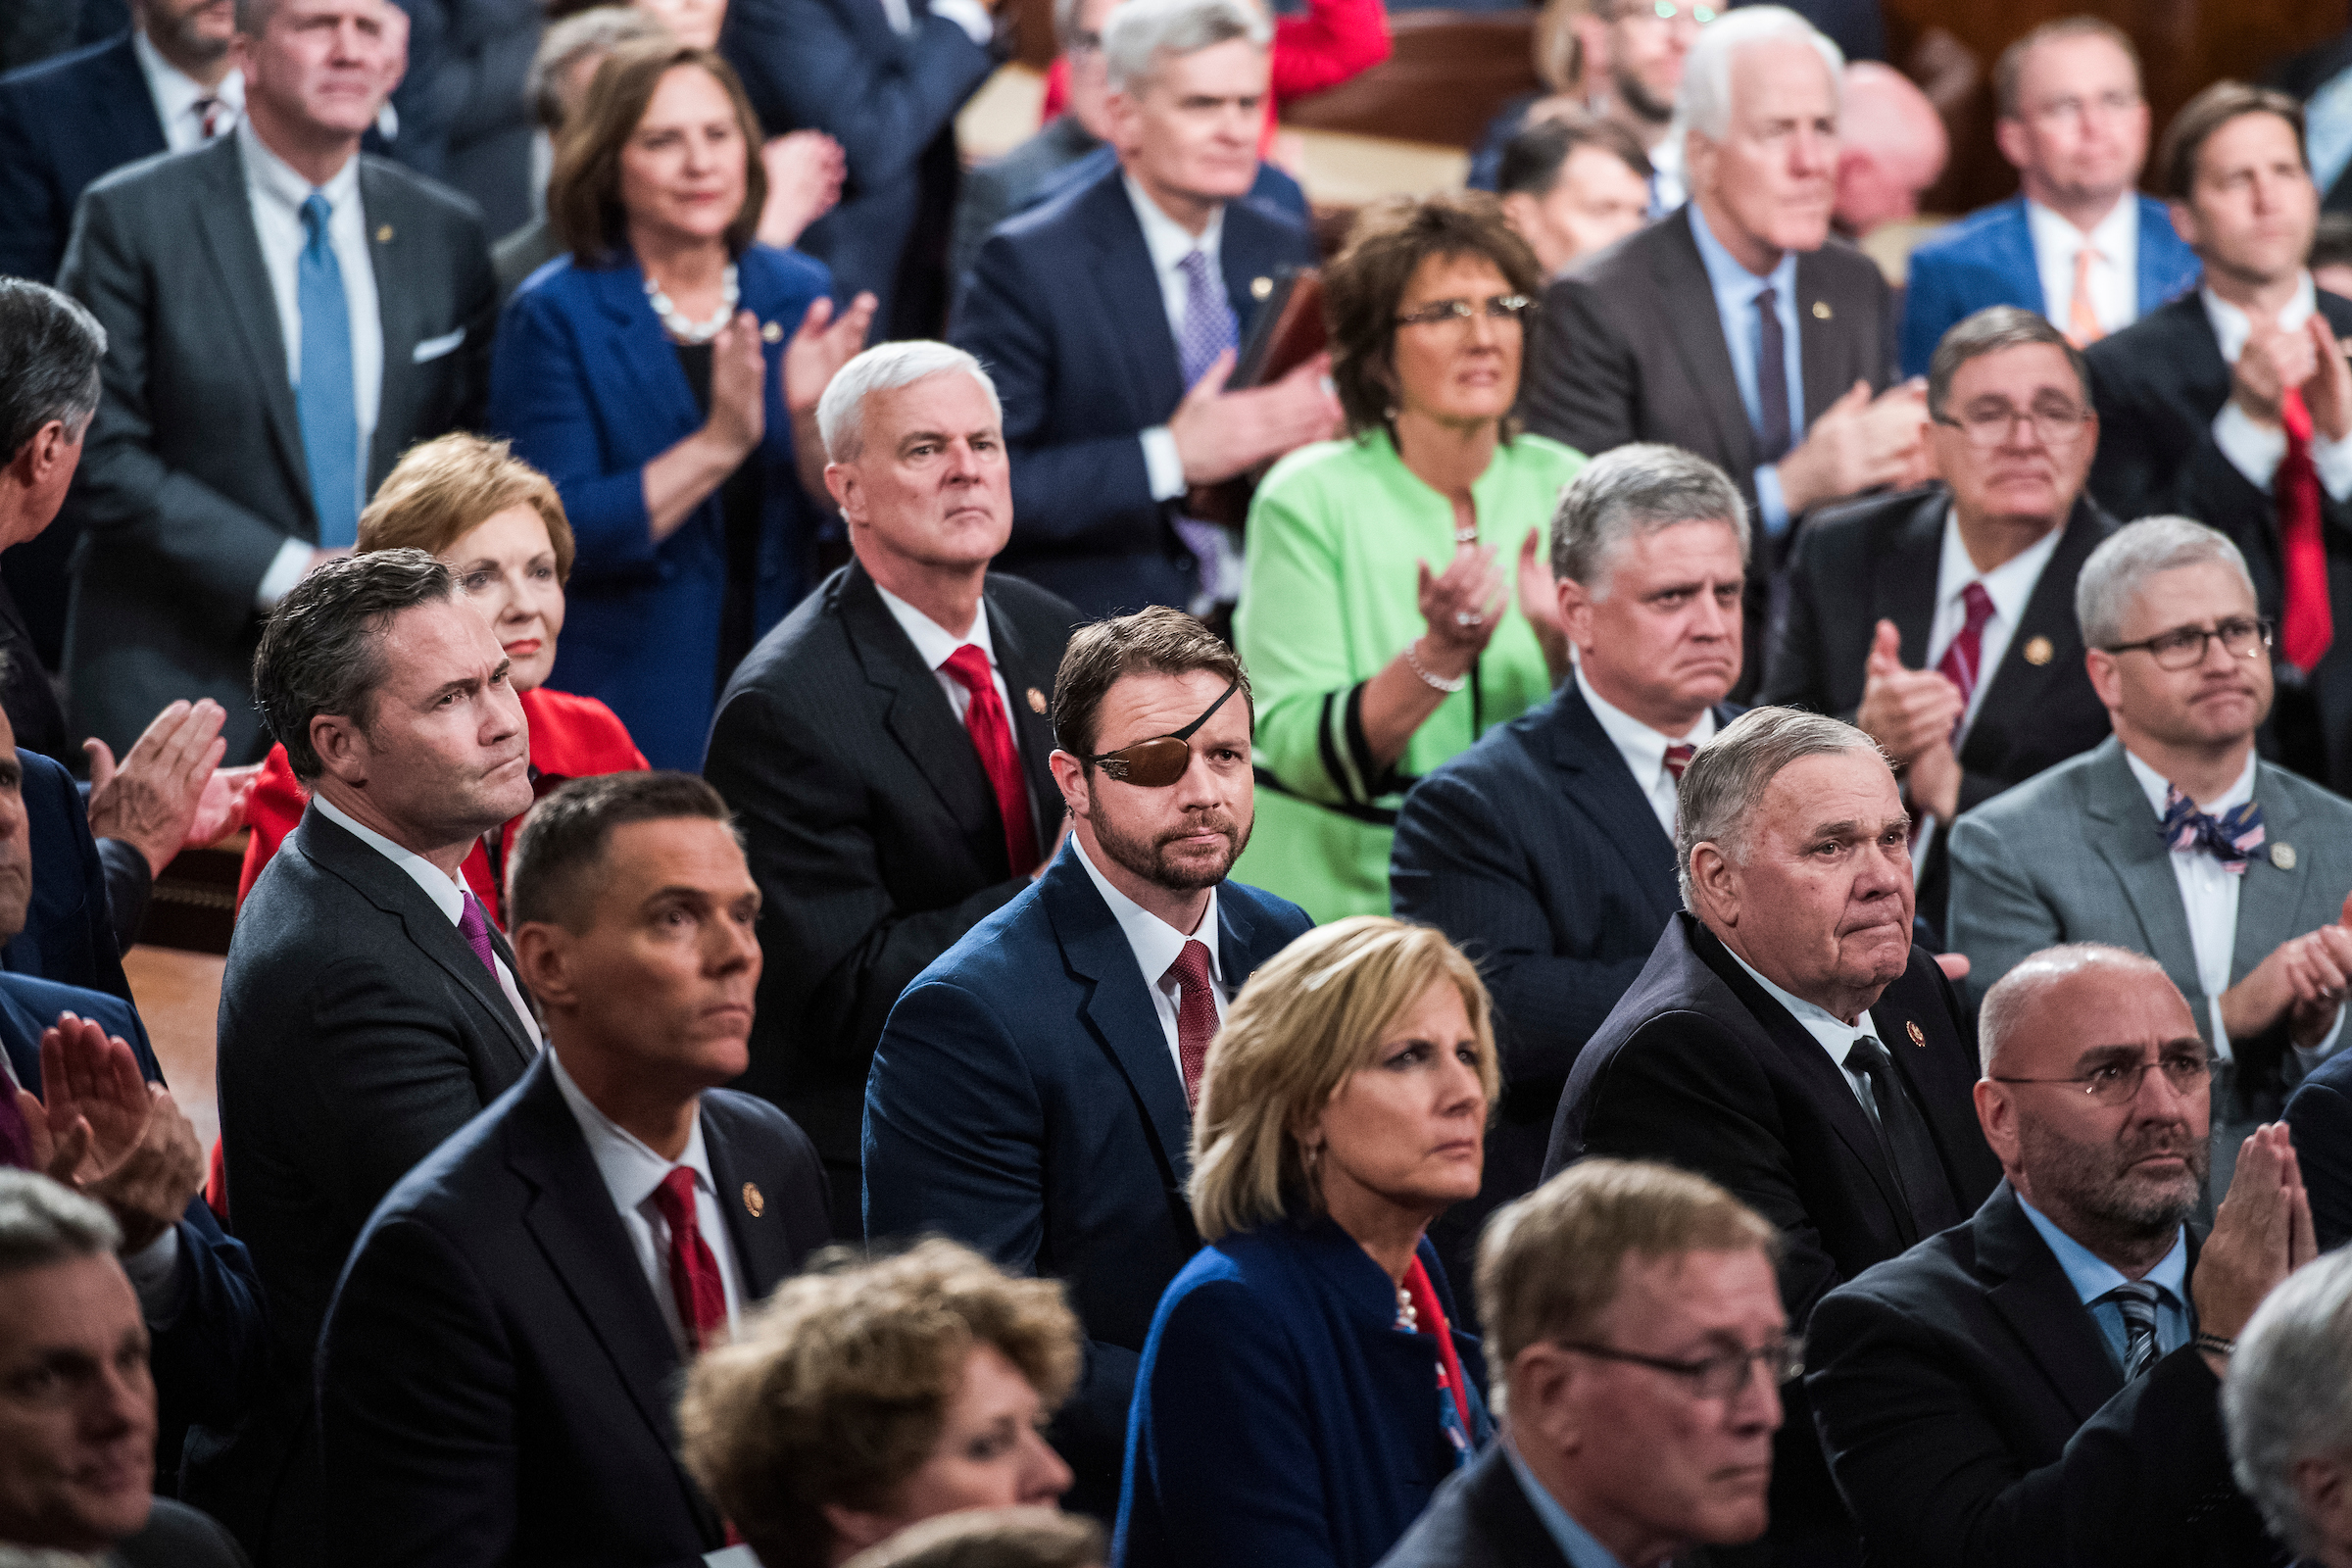 Rep. Dan Crenshaw, R-Texas, center, and House Republicans are seen in the House Chamber as President Donald Trump delivered his State of the Union address on Tuesday, February 5, 2019. (Tom Williams/CQ Roll Call)